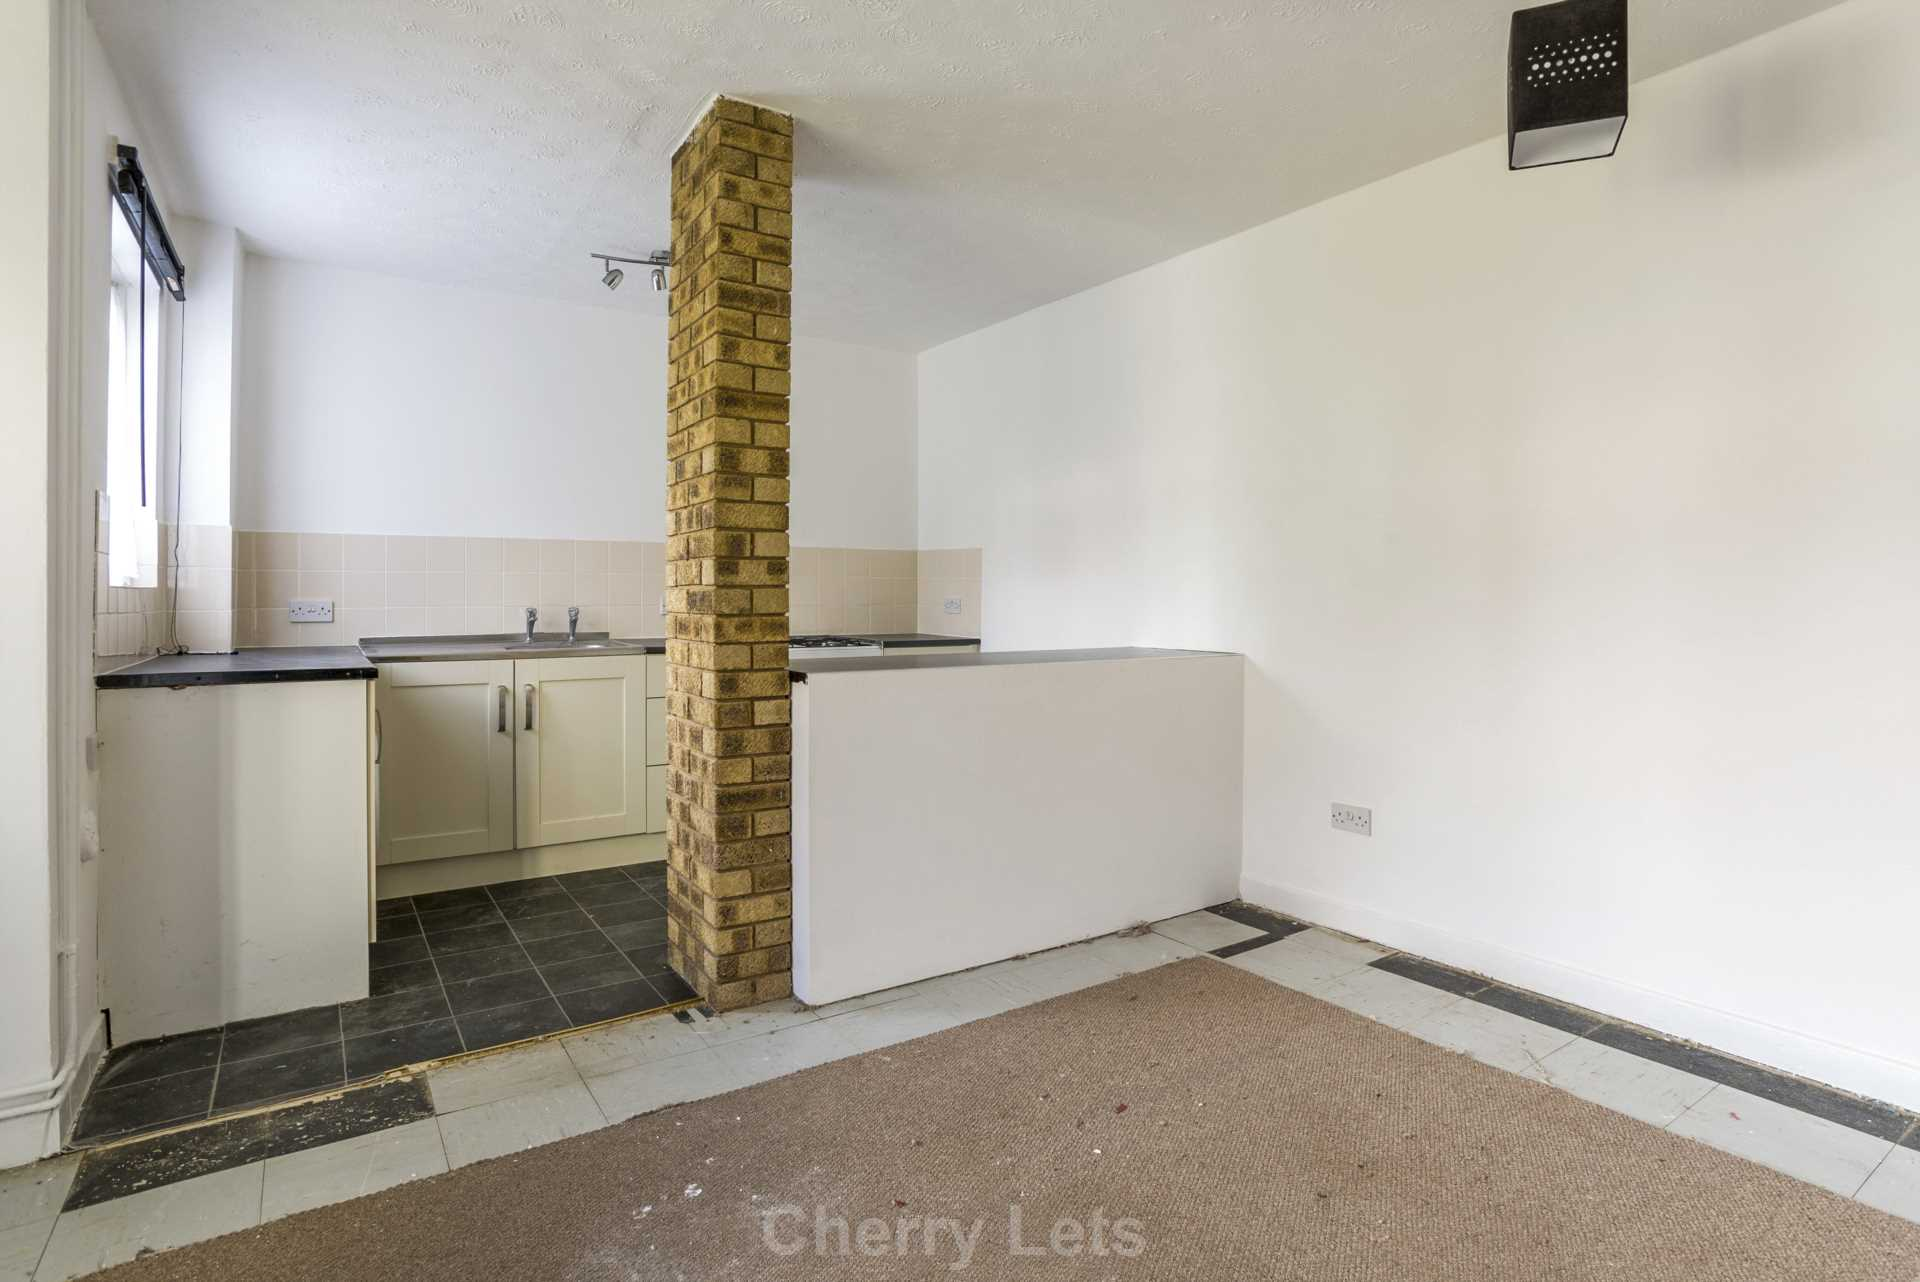 1 bed end of terrace house to rent in Bedford Close, Banbury, OX16  - Property Image 5